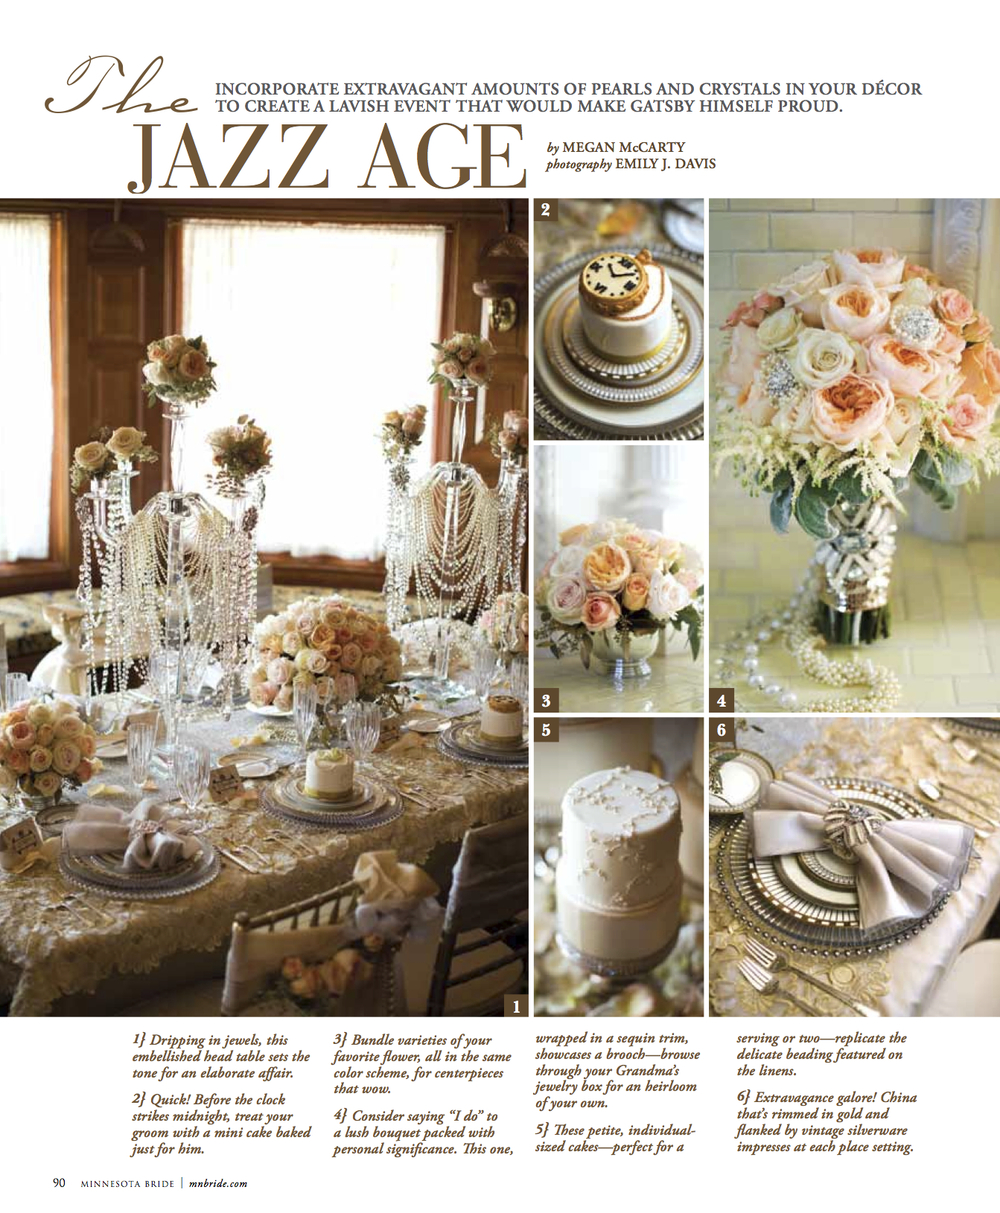 MN Bride TheJazzAge layout p. 1 jpeg.jpg